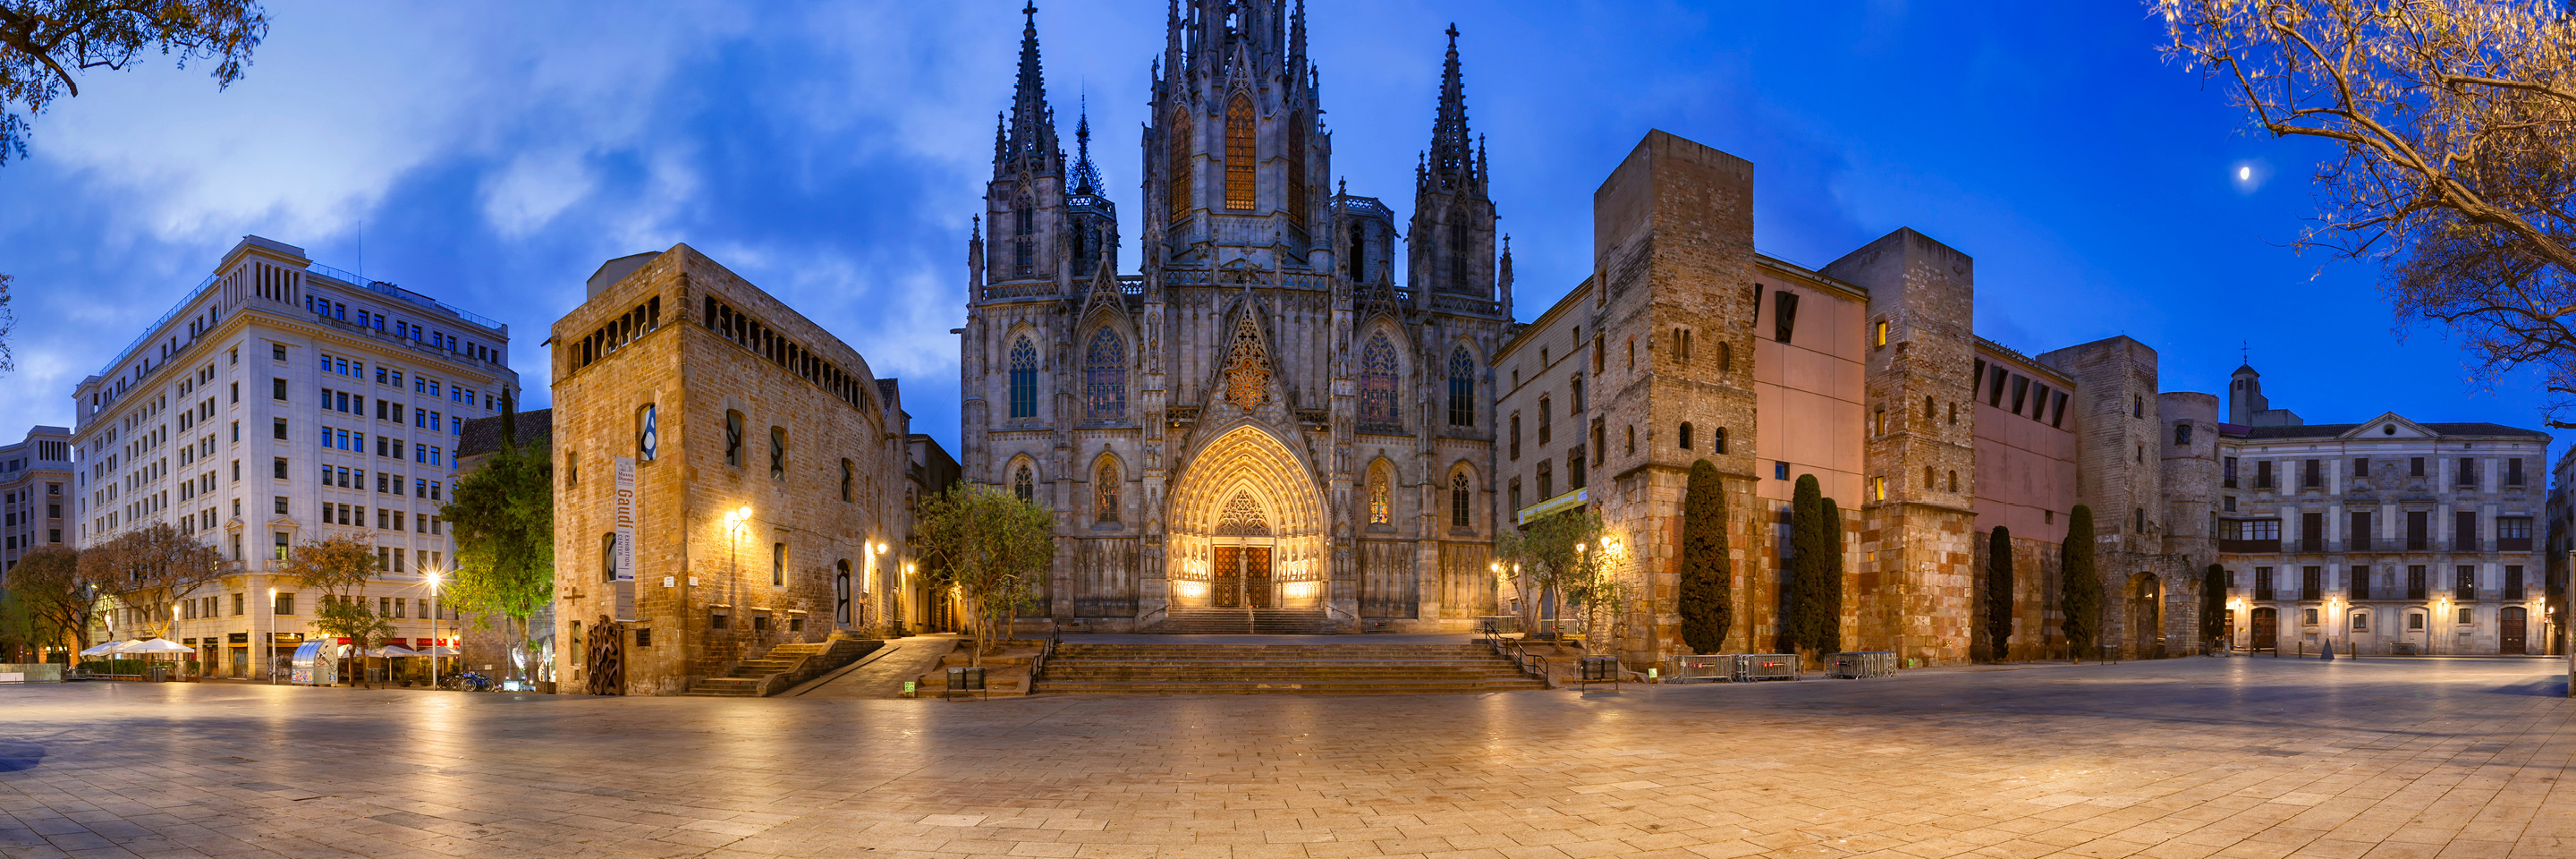 A Culinary Experience in Burgundy & Provence with 2 Nights in Paris, 2 Nights in Nice & 3 Nights in Barcelona (Southbound)